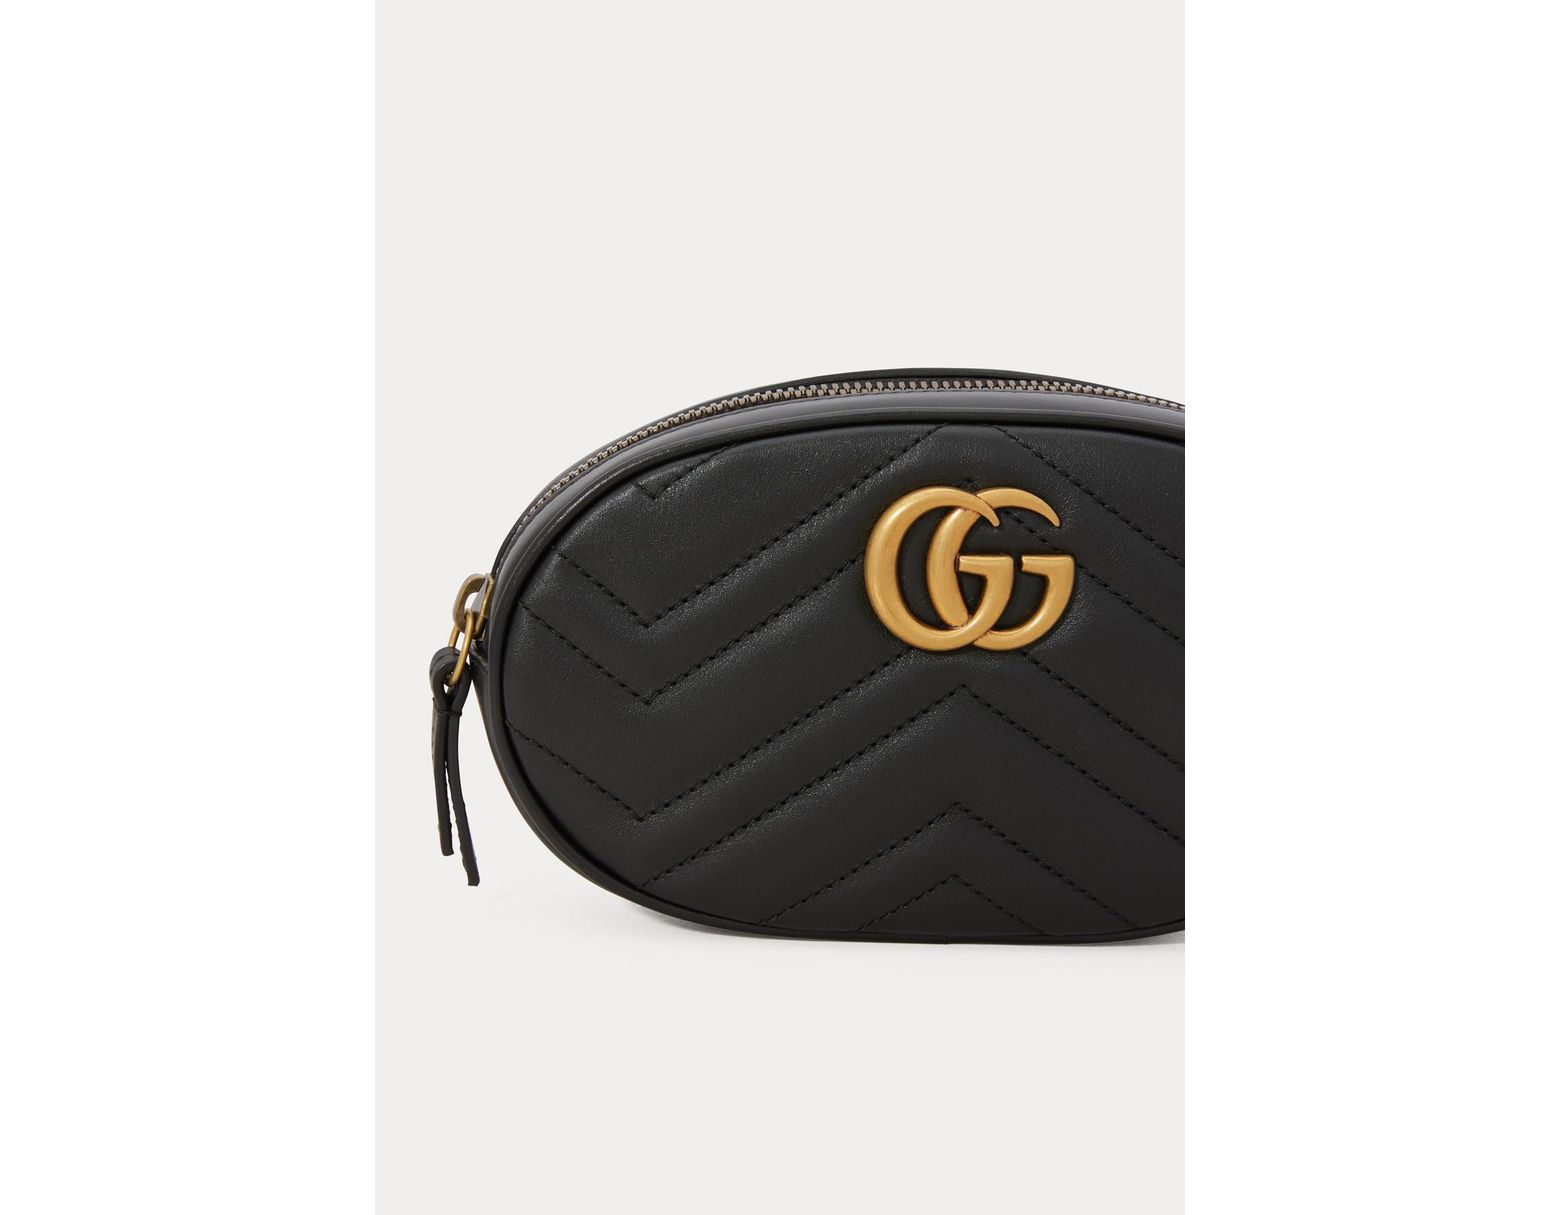 771bb187a37f Gucci GG Marmont Belt Bag in Black - Lyst